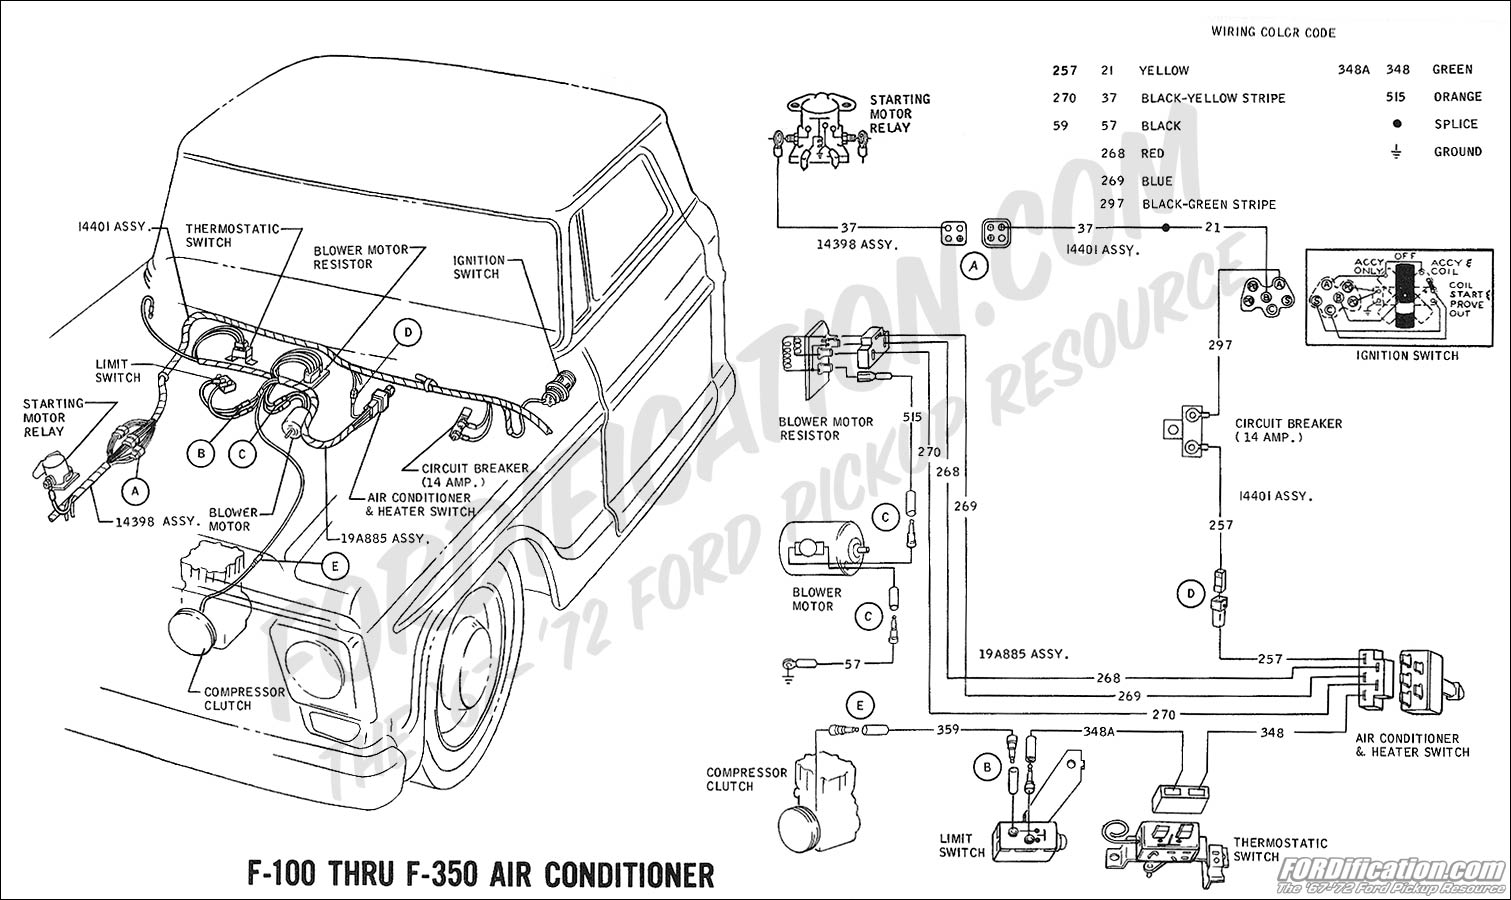 1966 ford f 150 wiring diagrams with Schematics H on 879177 Alternator Voltage Regulator Wiring also 1279644 1977 F 250 4x4 Dimensions moreover P 0900c1528007bdaa moreover Parts Front Suspension  ponents Diagram Car as well Schematics h.